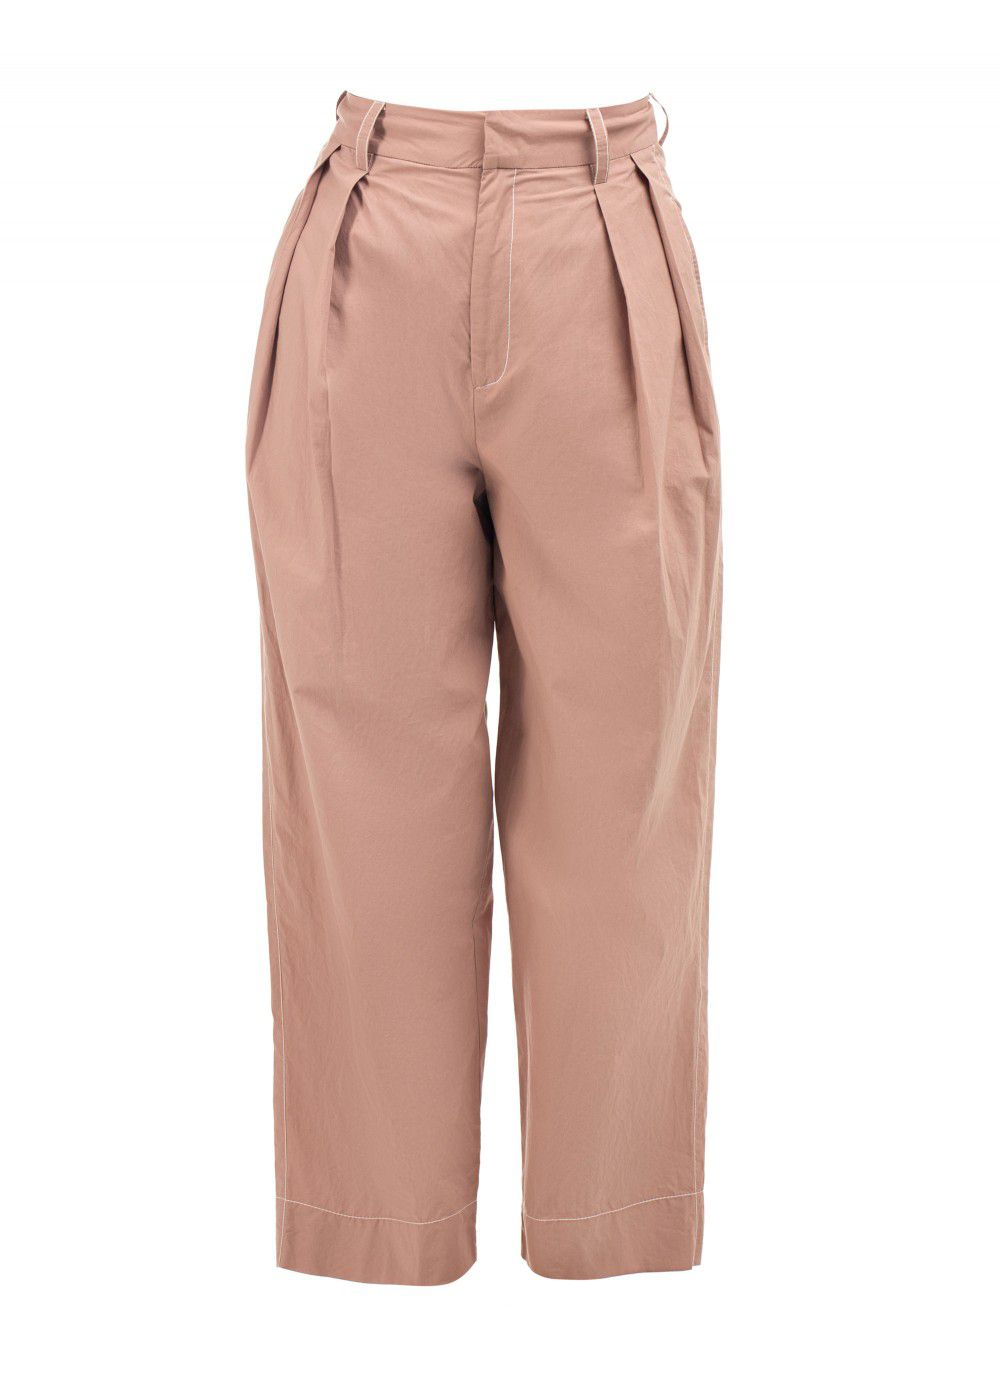 Dhruv Kapoor High Waist Beige Trousers